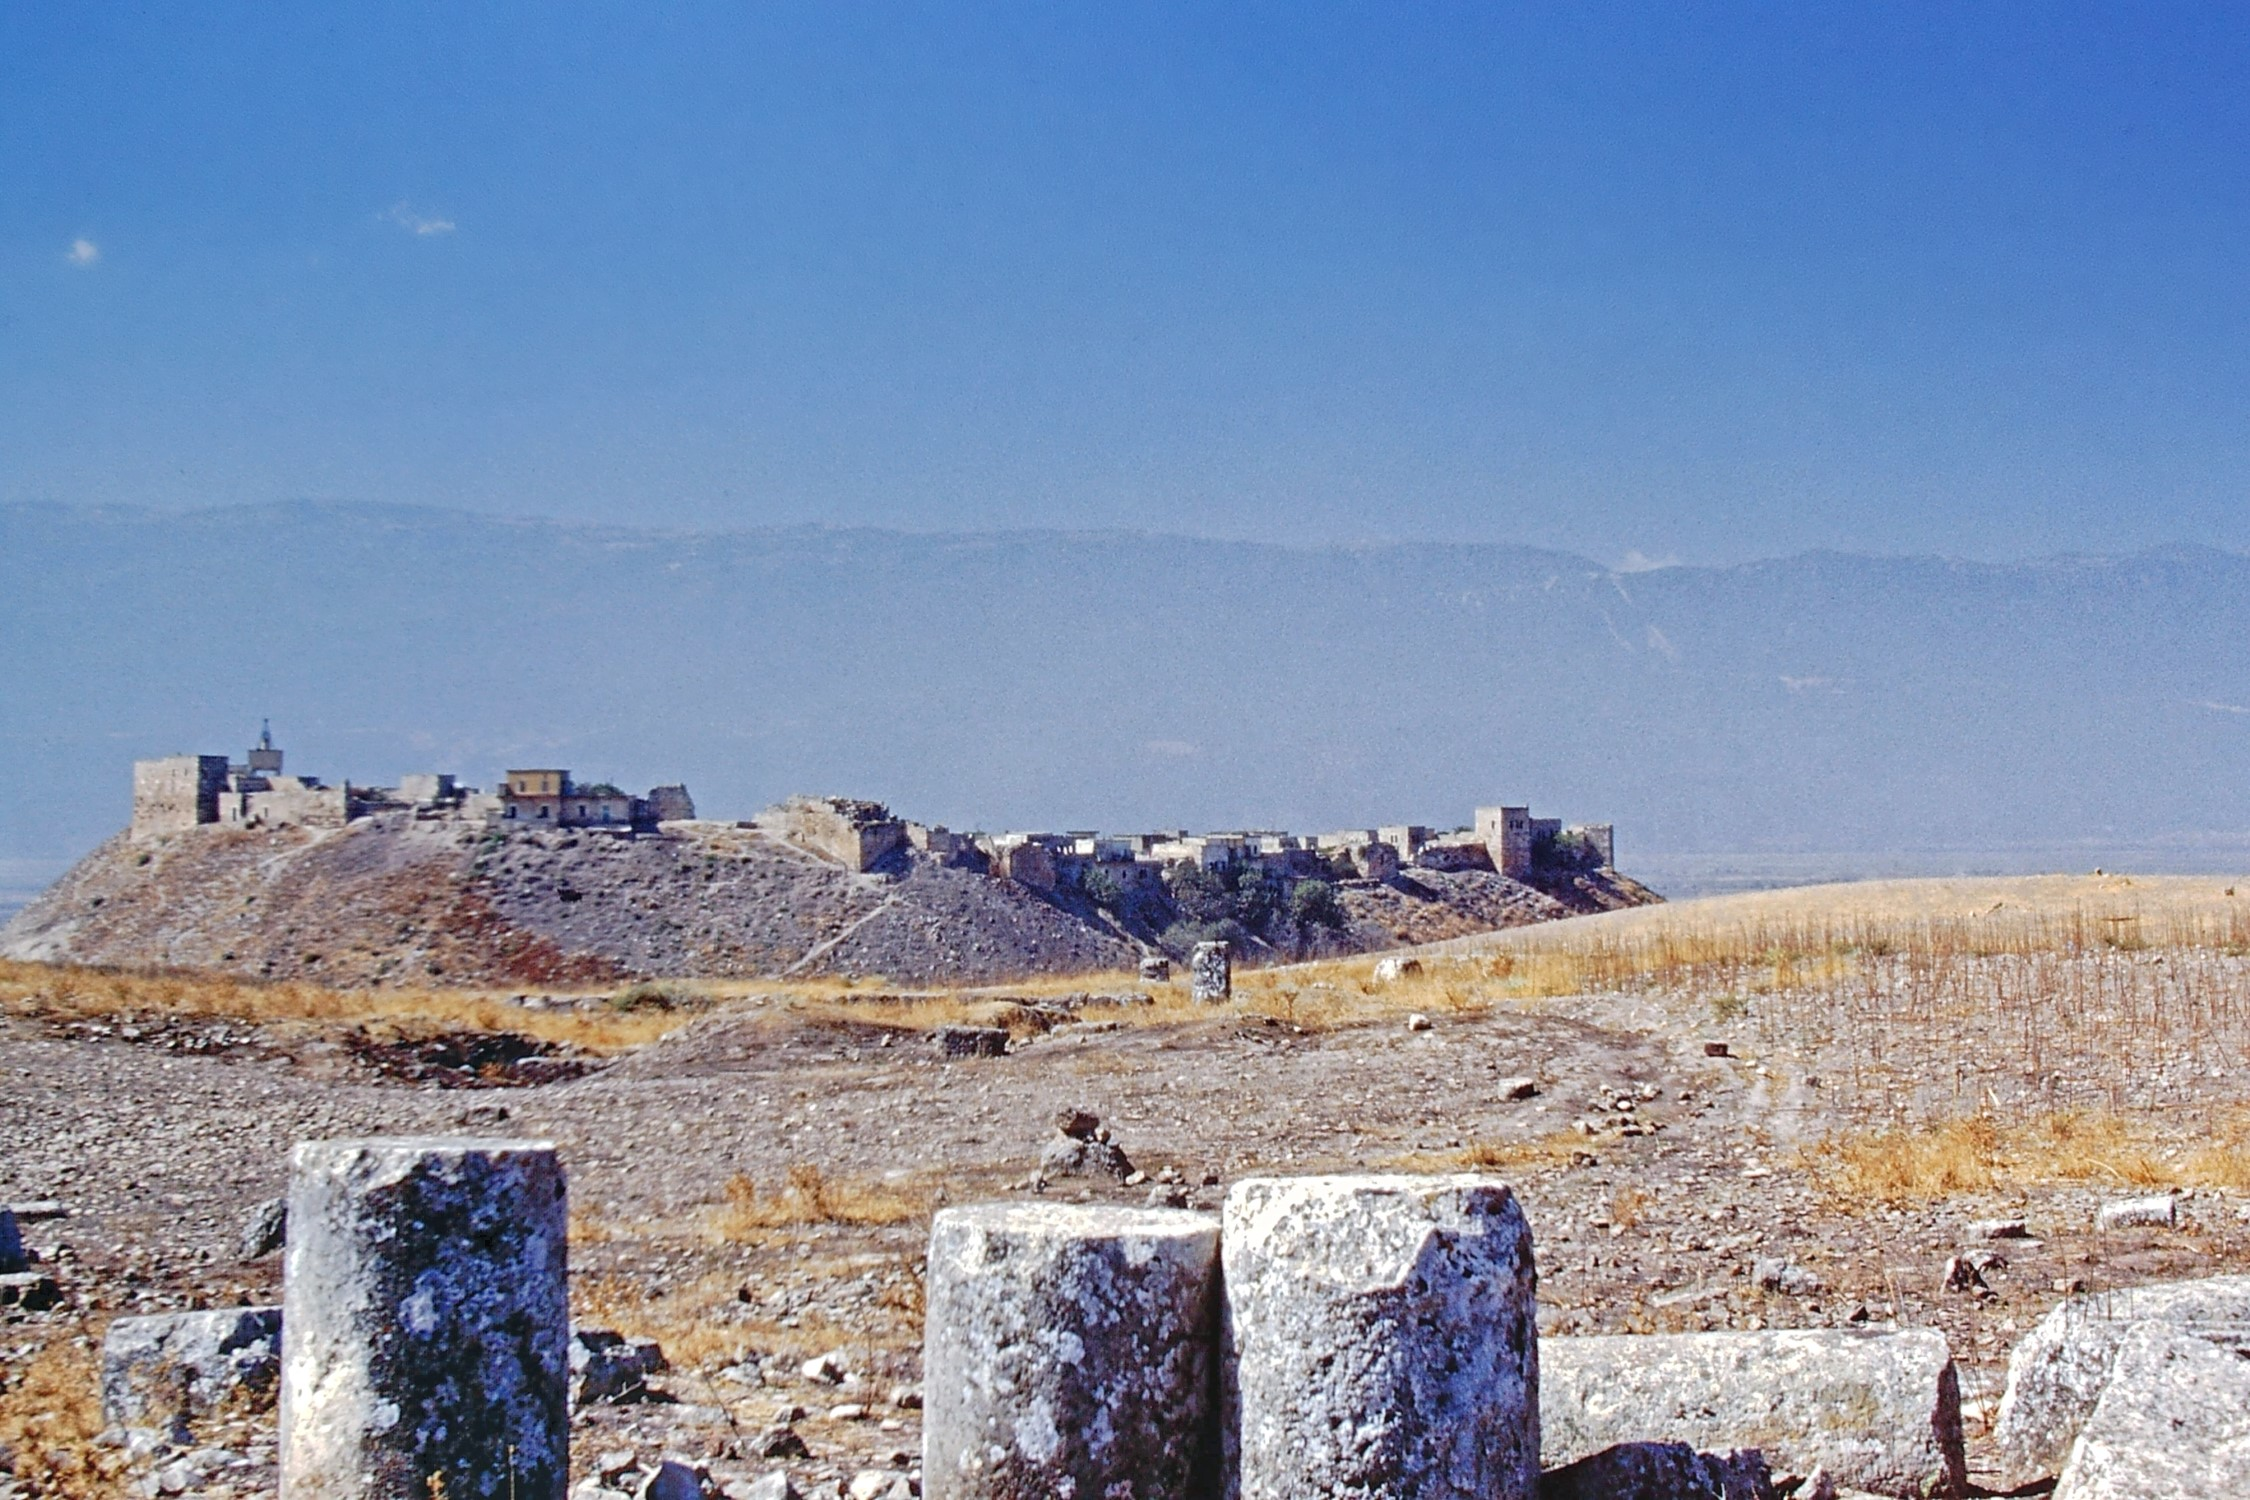 Ruined columns and a distant village